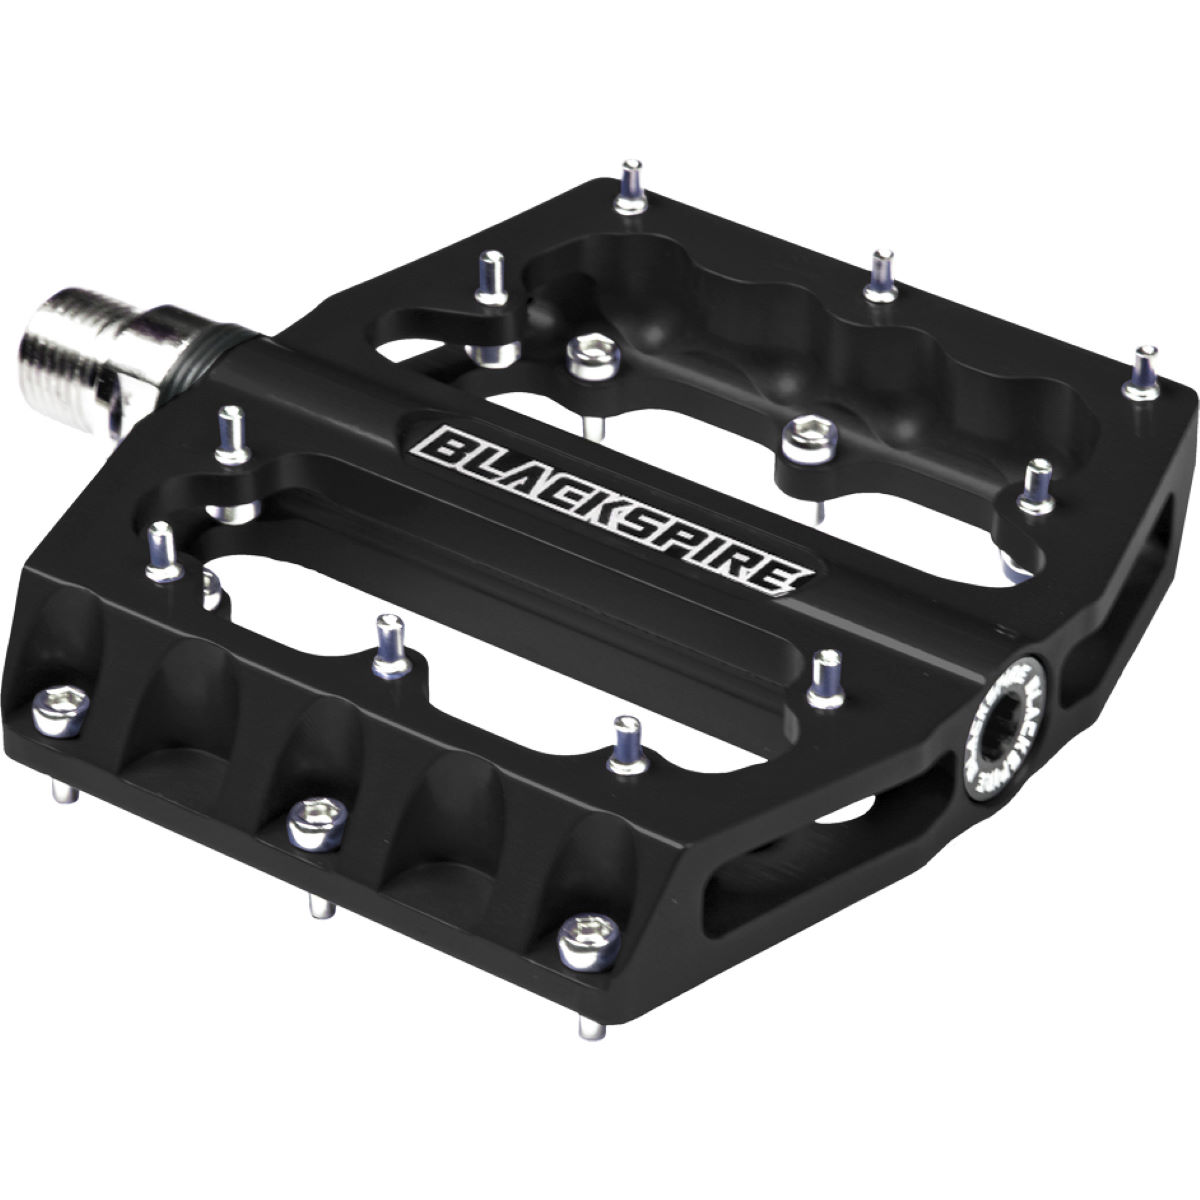 Lifeline X-tools Tool Tray For Workstand   Workstands